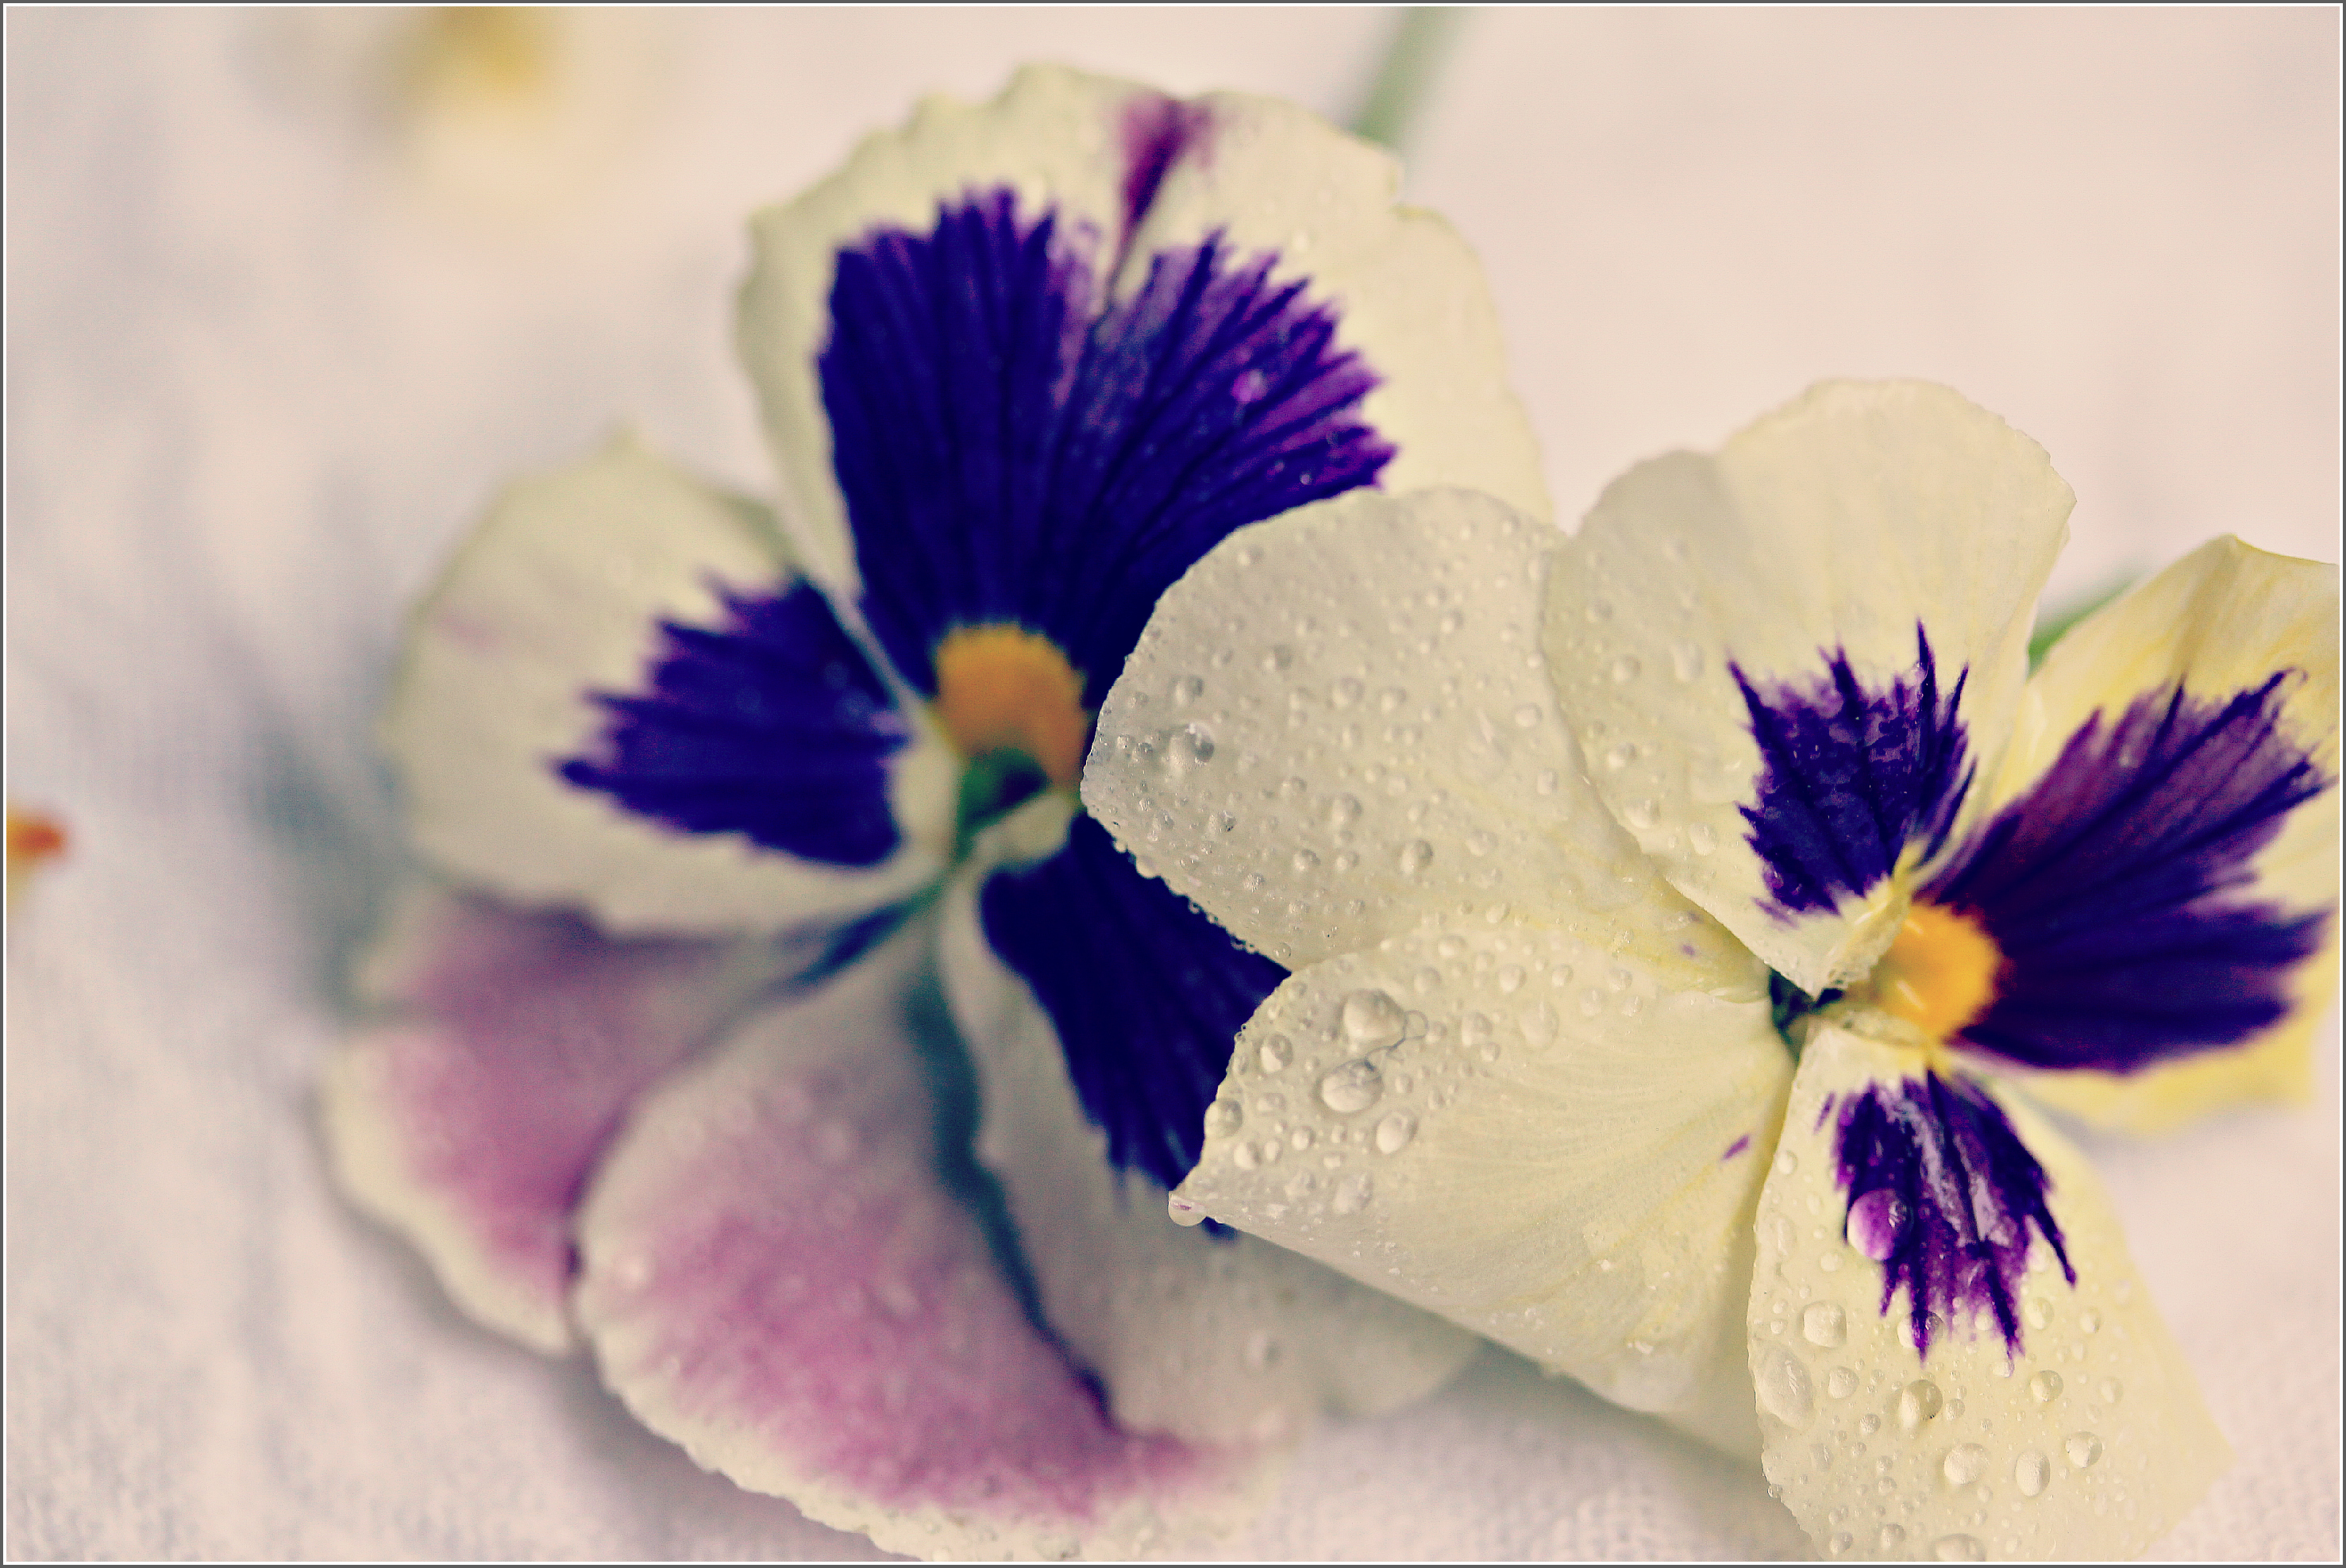 Pansies and Water Droplets by Dena T Bray©